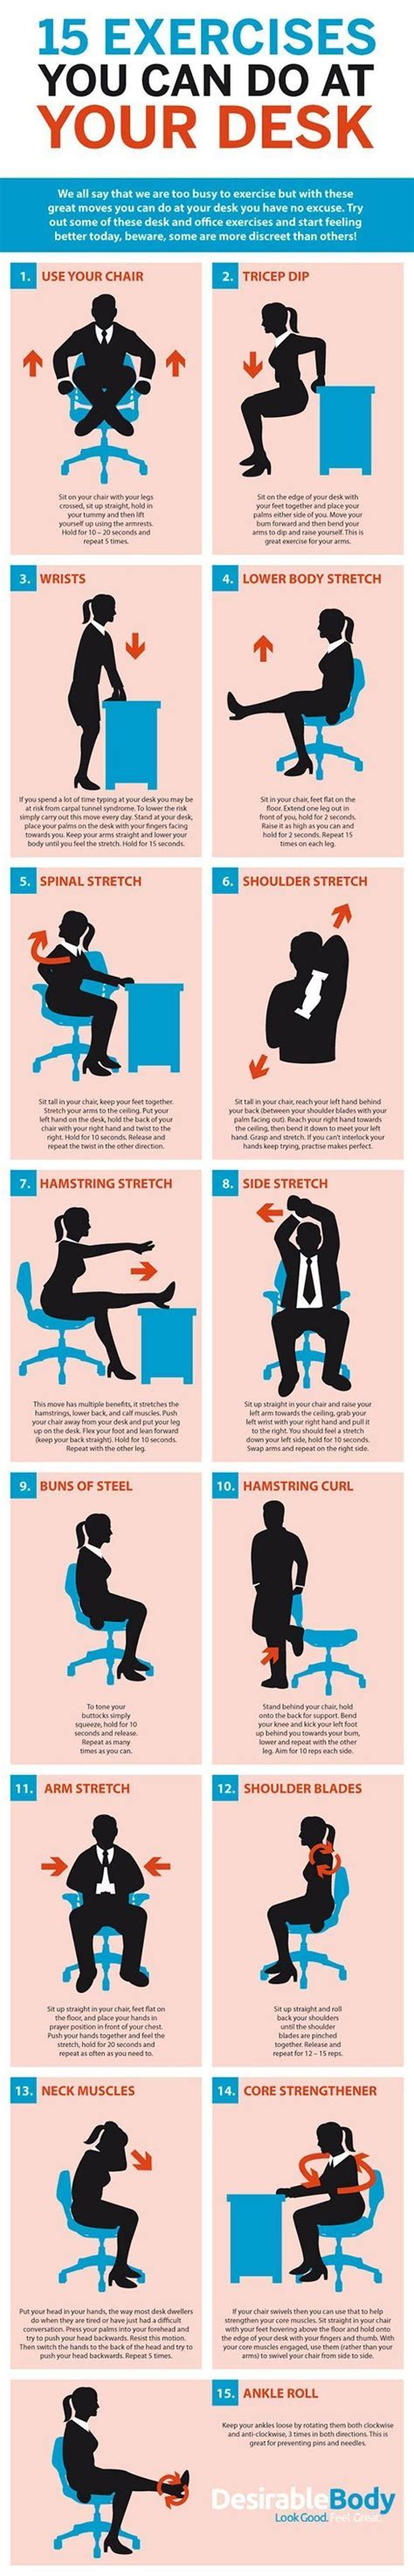 exercises to do at your desk with pictures 15 exercises you can do at your desk exercises workout